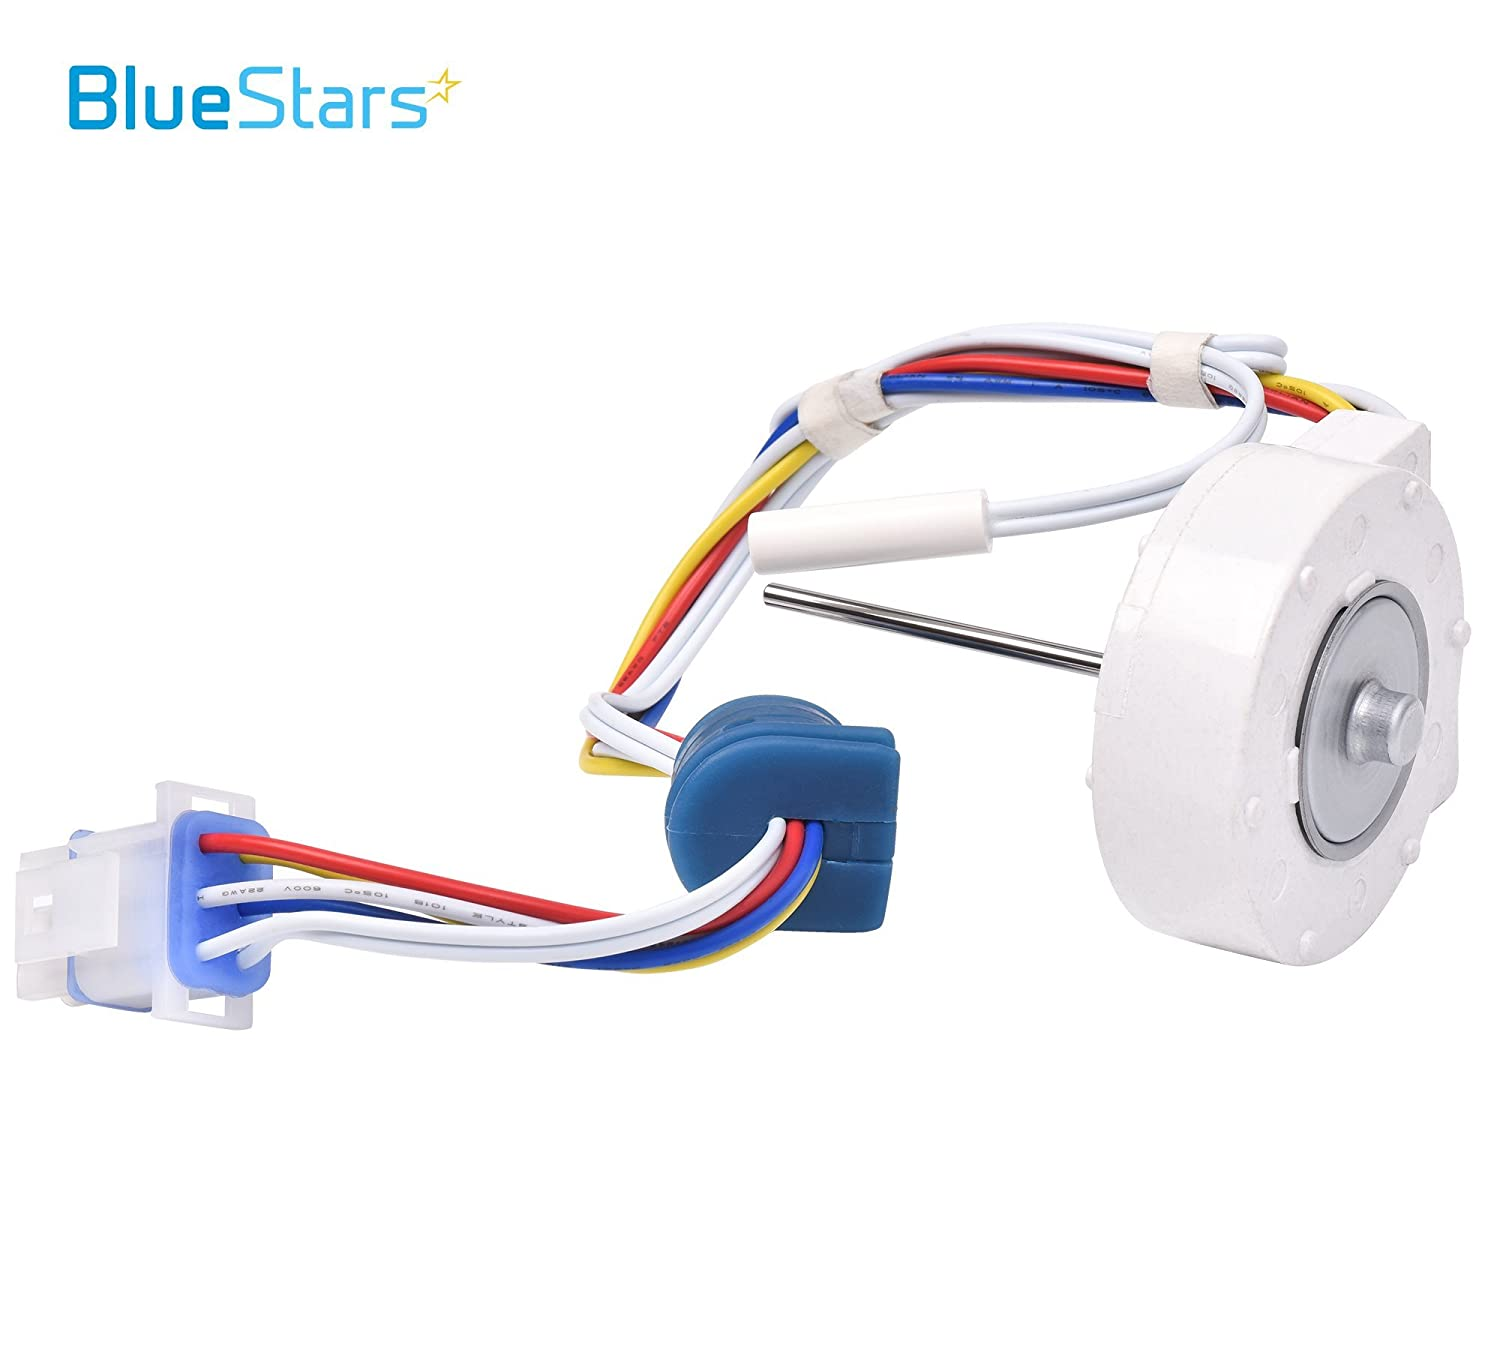 Exact Fit for GE Hotpoint Refrigerators Ultra Durable WR60X10307 Evaporator Fan Motor Replacement Part by Blue Stars Replaces 1550741 AP4438809 WR60X10224